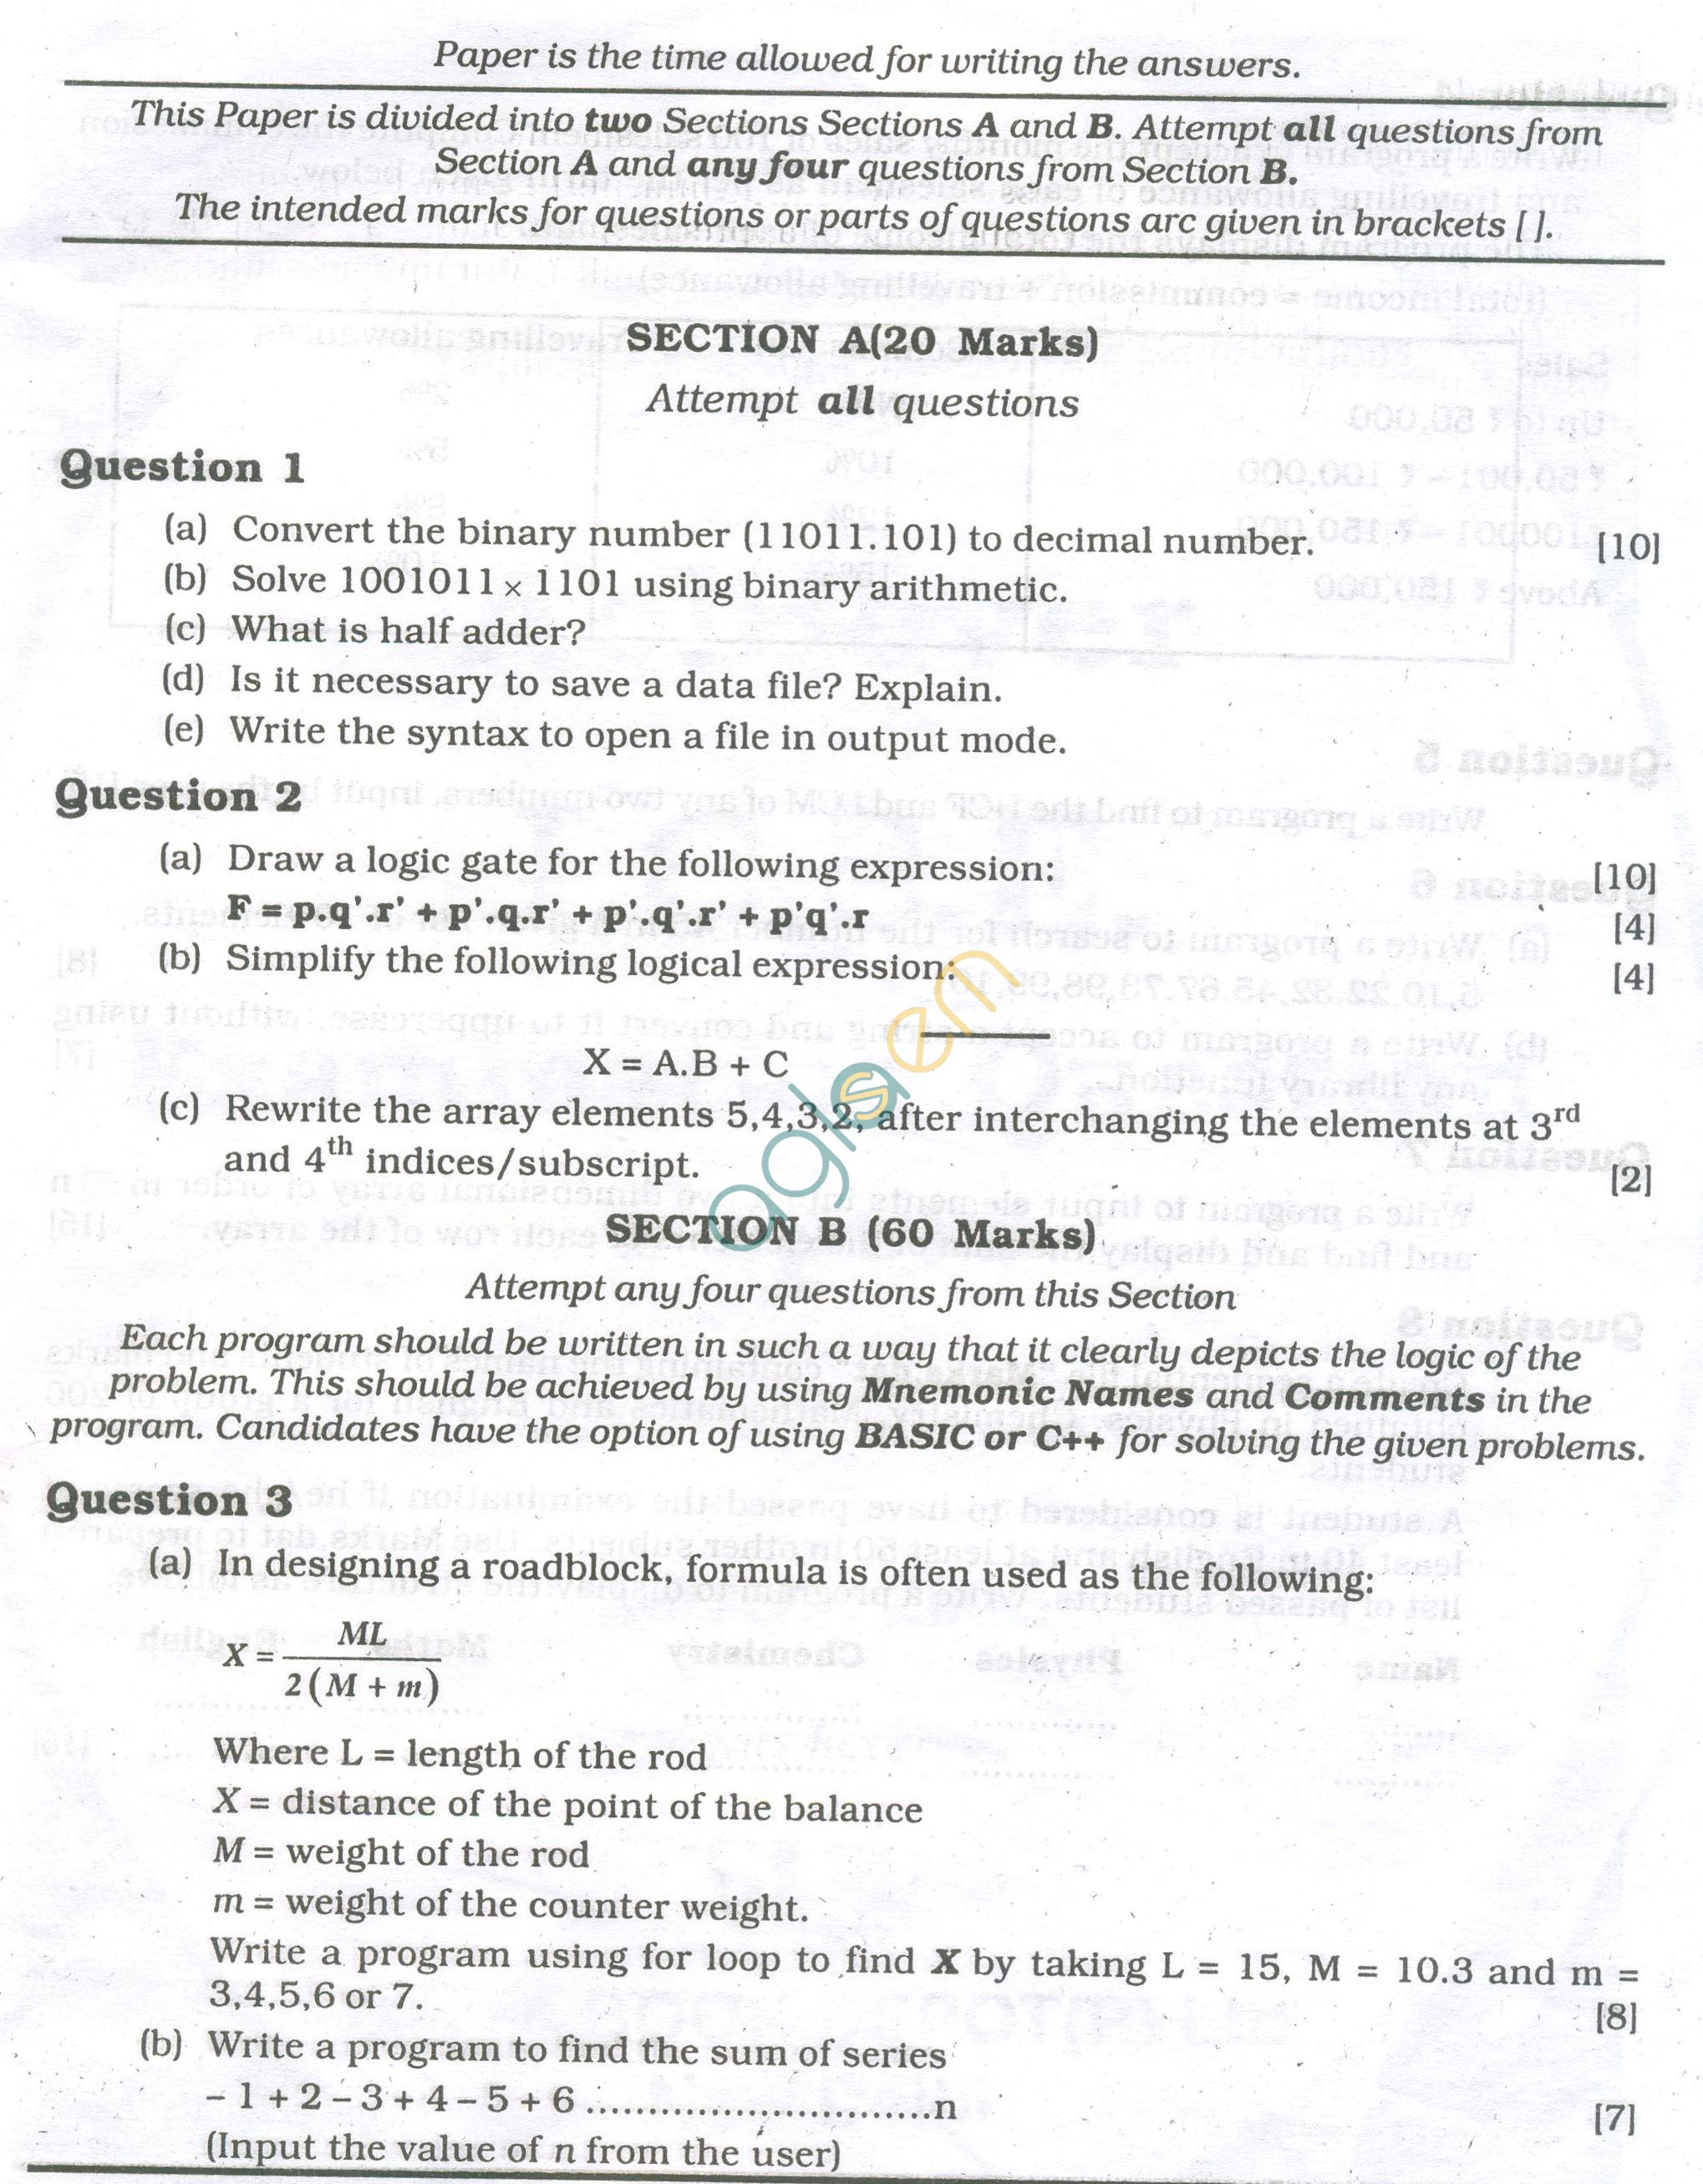 ICSE Question Papers 2013 for Class 10 - Computer Science